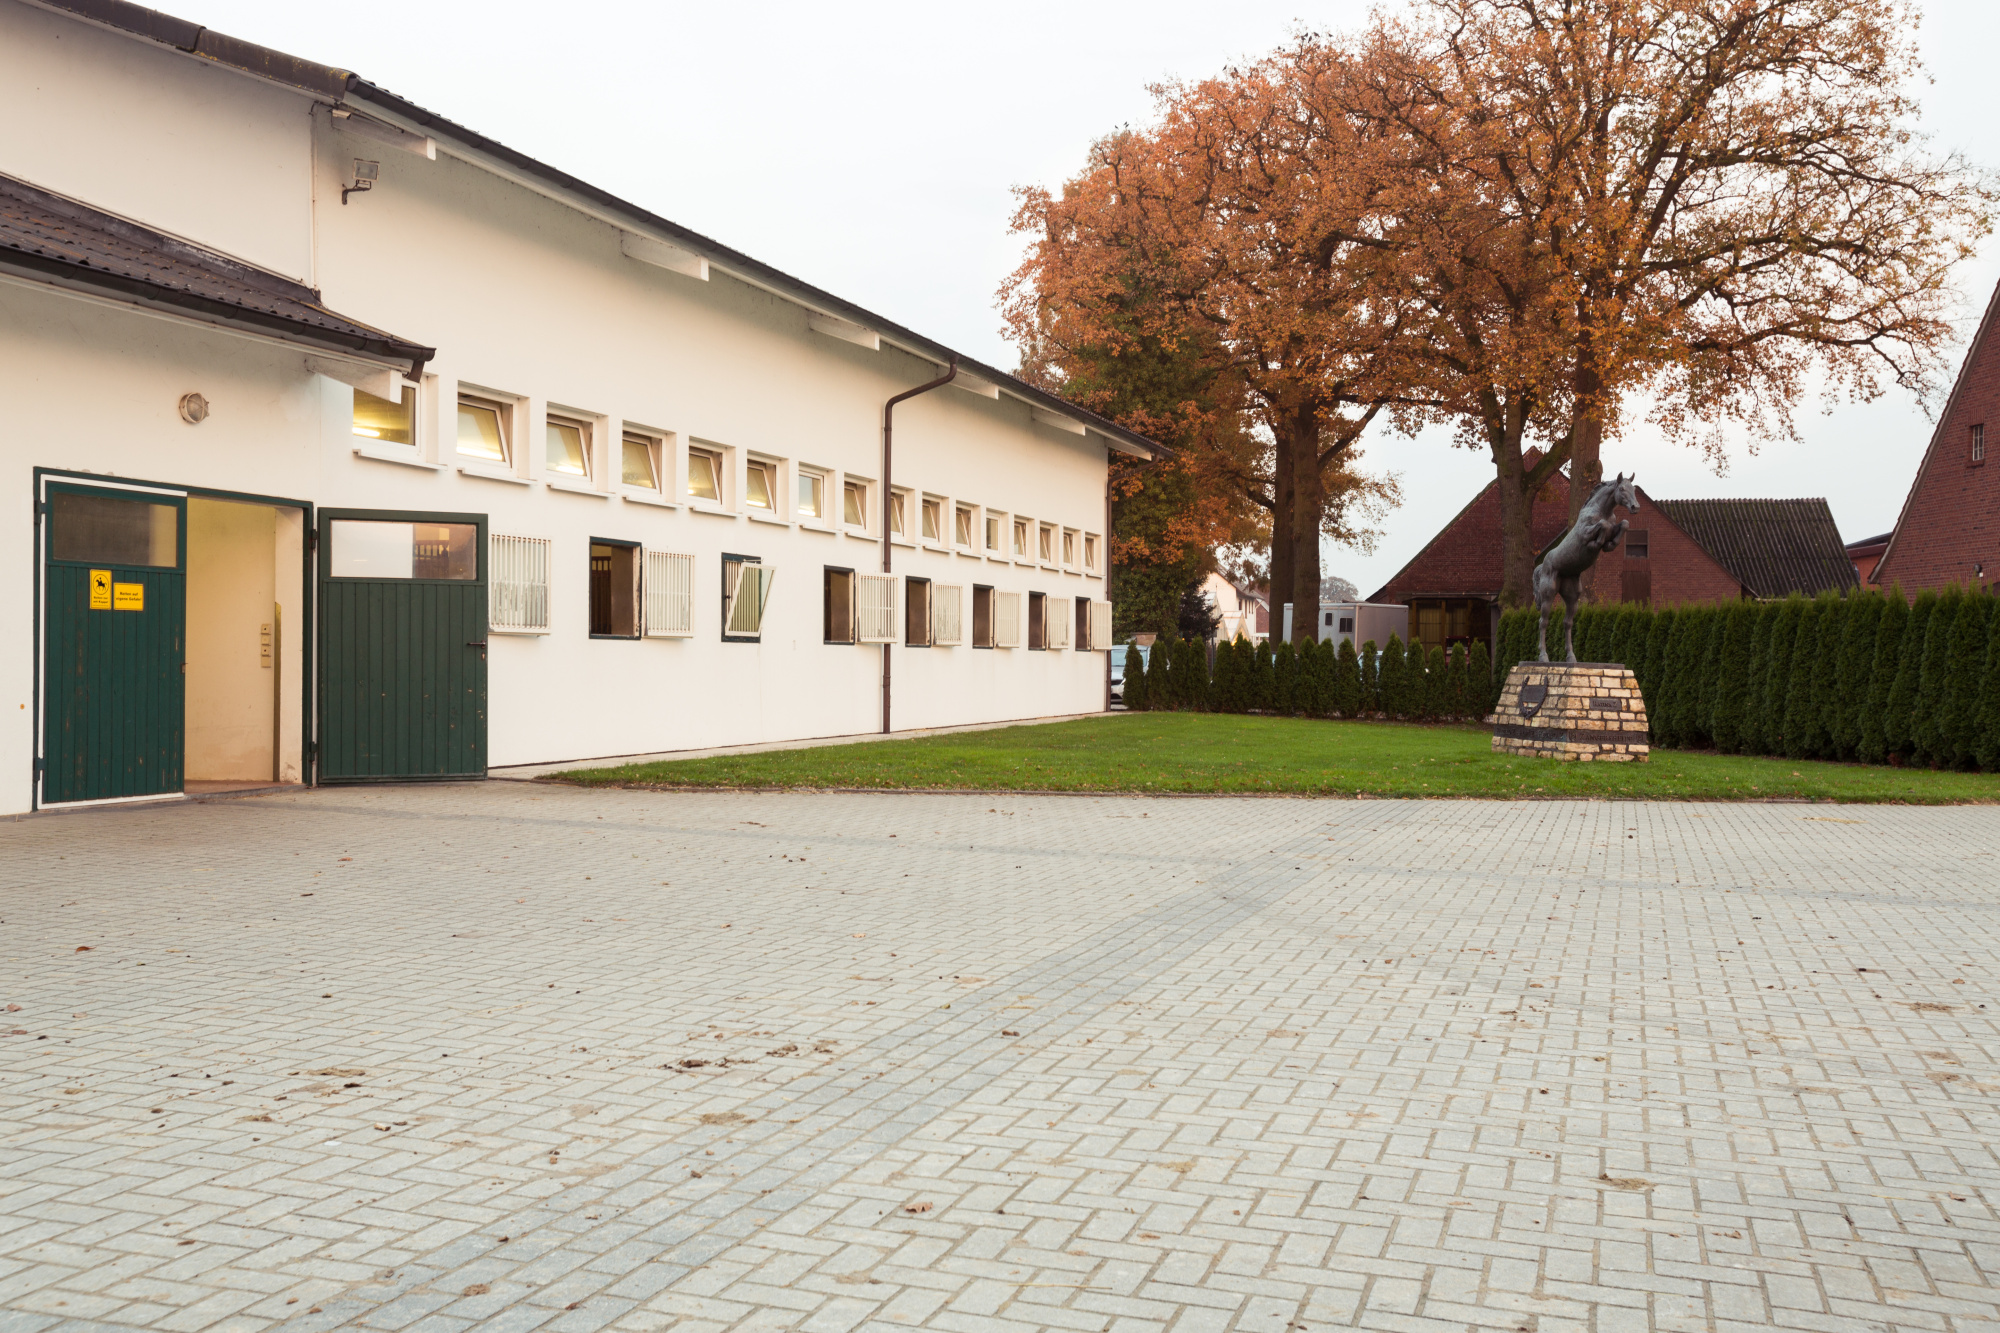 The facility has grown in the last two years. A new white stable block has been built in addition to a walker and a gigantic outdoor arena. To train fitness and stamina there is a long track for galloping on sand surrounded by birch trees and hedges.